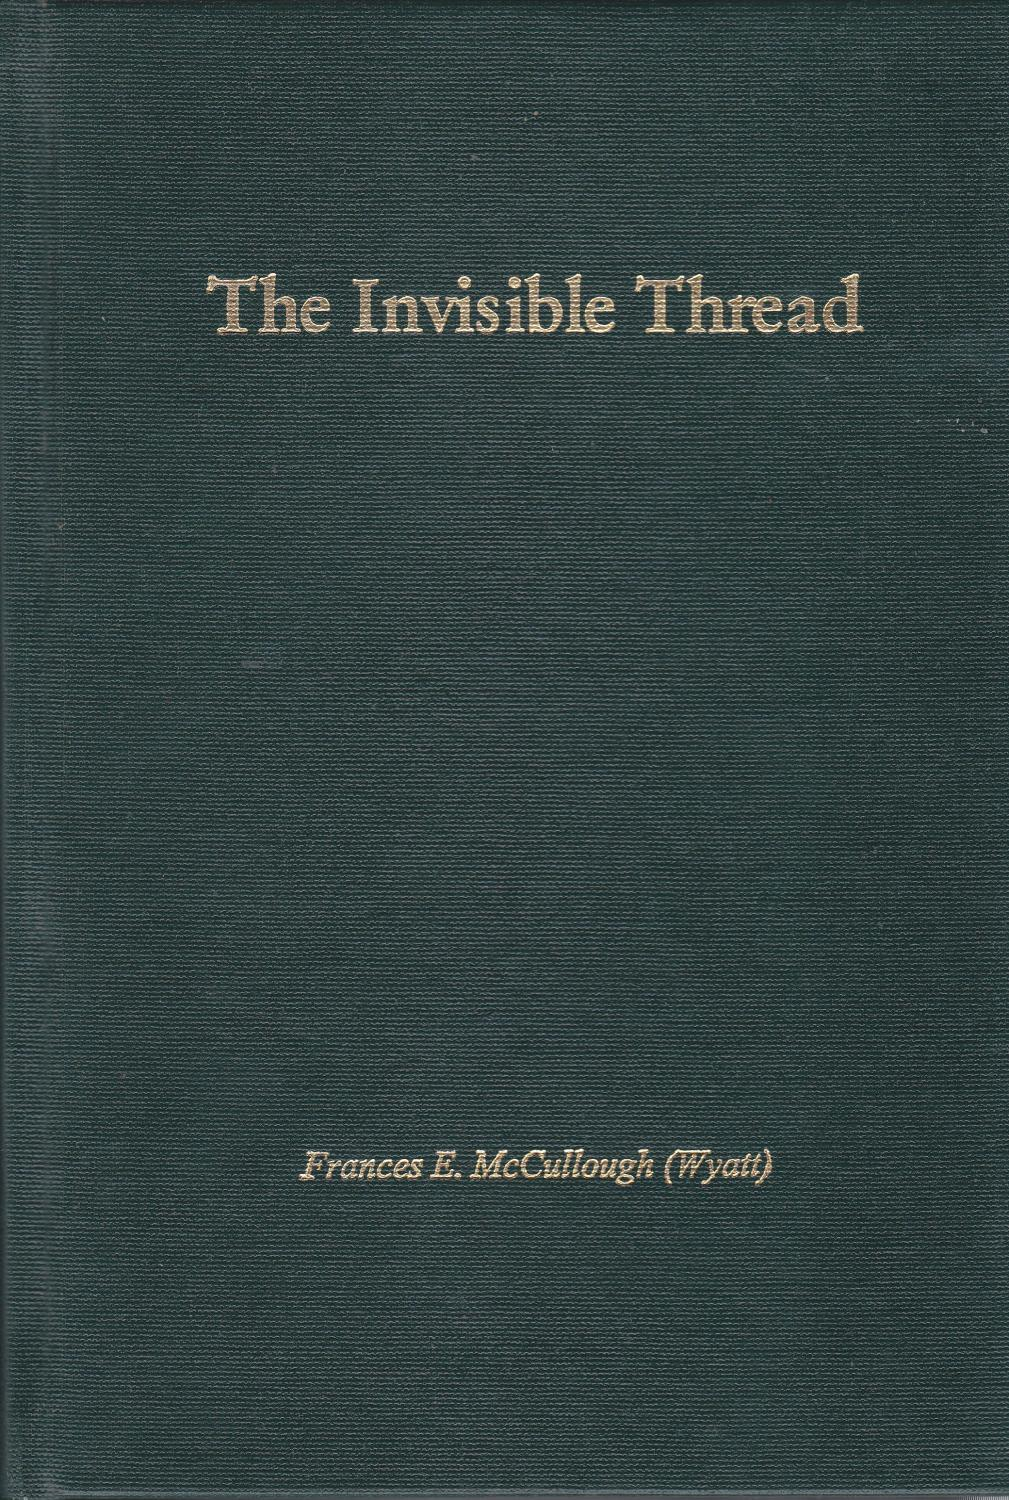 The Invisible Thread: Memories of growing up in the Blindman River Valley at Bentley, Alberta, in the 1920s and '30s Frances E. McCullough (Wyatt) Fi